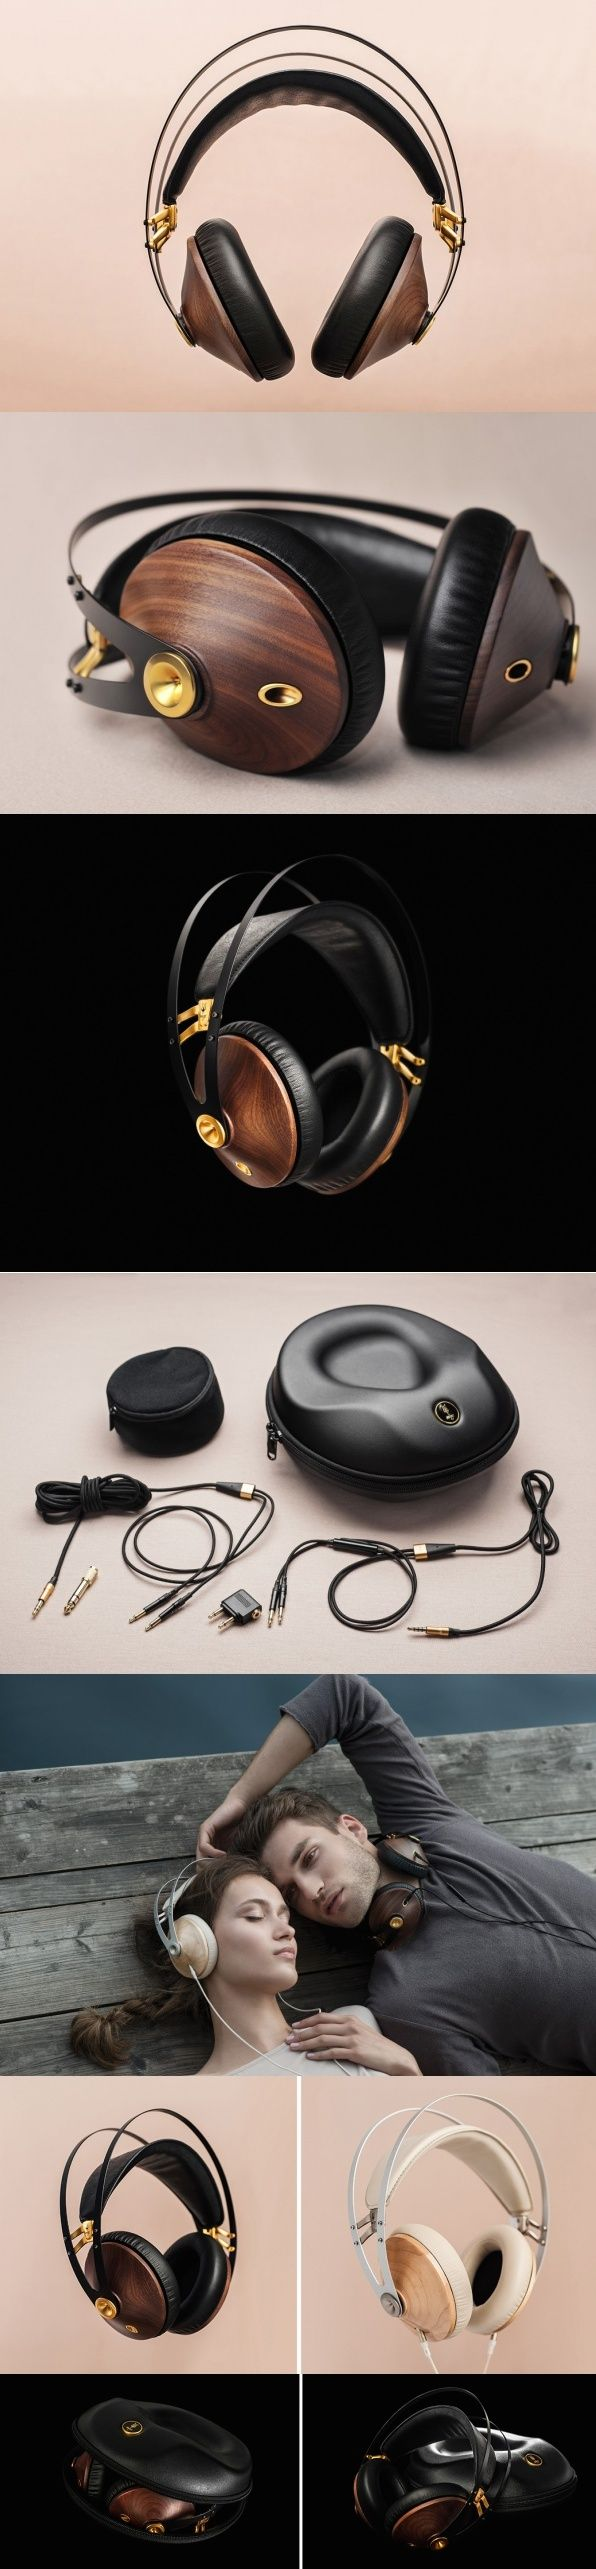 Designed with the express purpose of being so good and convenient, the 99 Classics headphones will stay with you forever, becoming the only headphones you'll ever need (and probably a piece of technology so valuably brilliant, it becomes a heirloom item).#Headphone #YankoDesign #Technology 3Audio